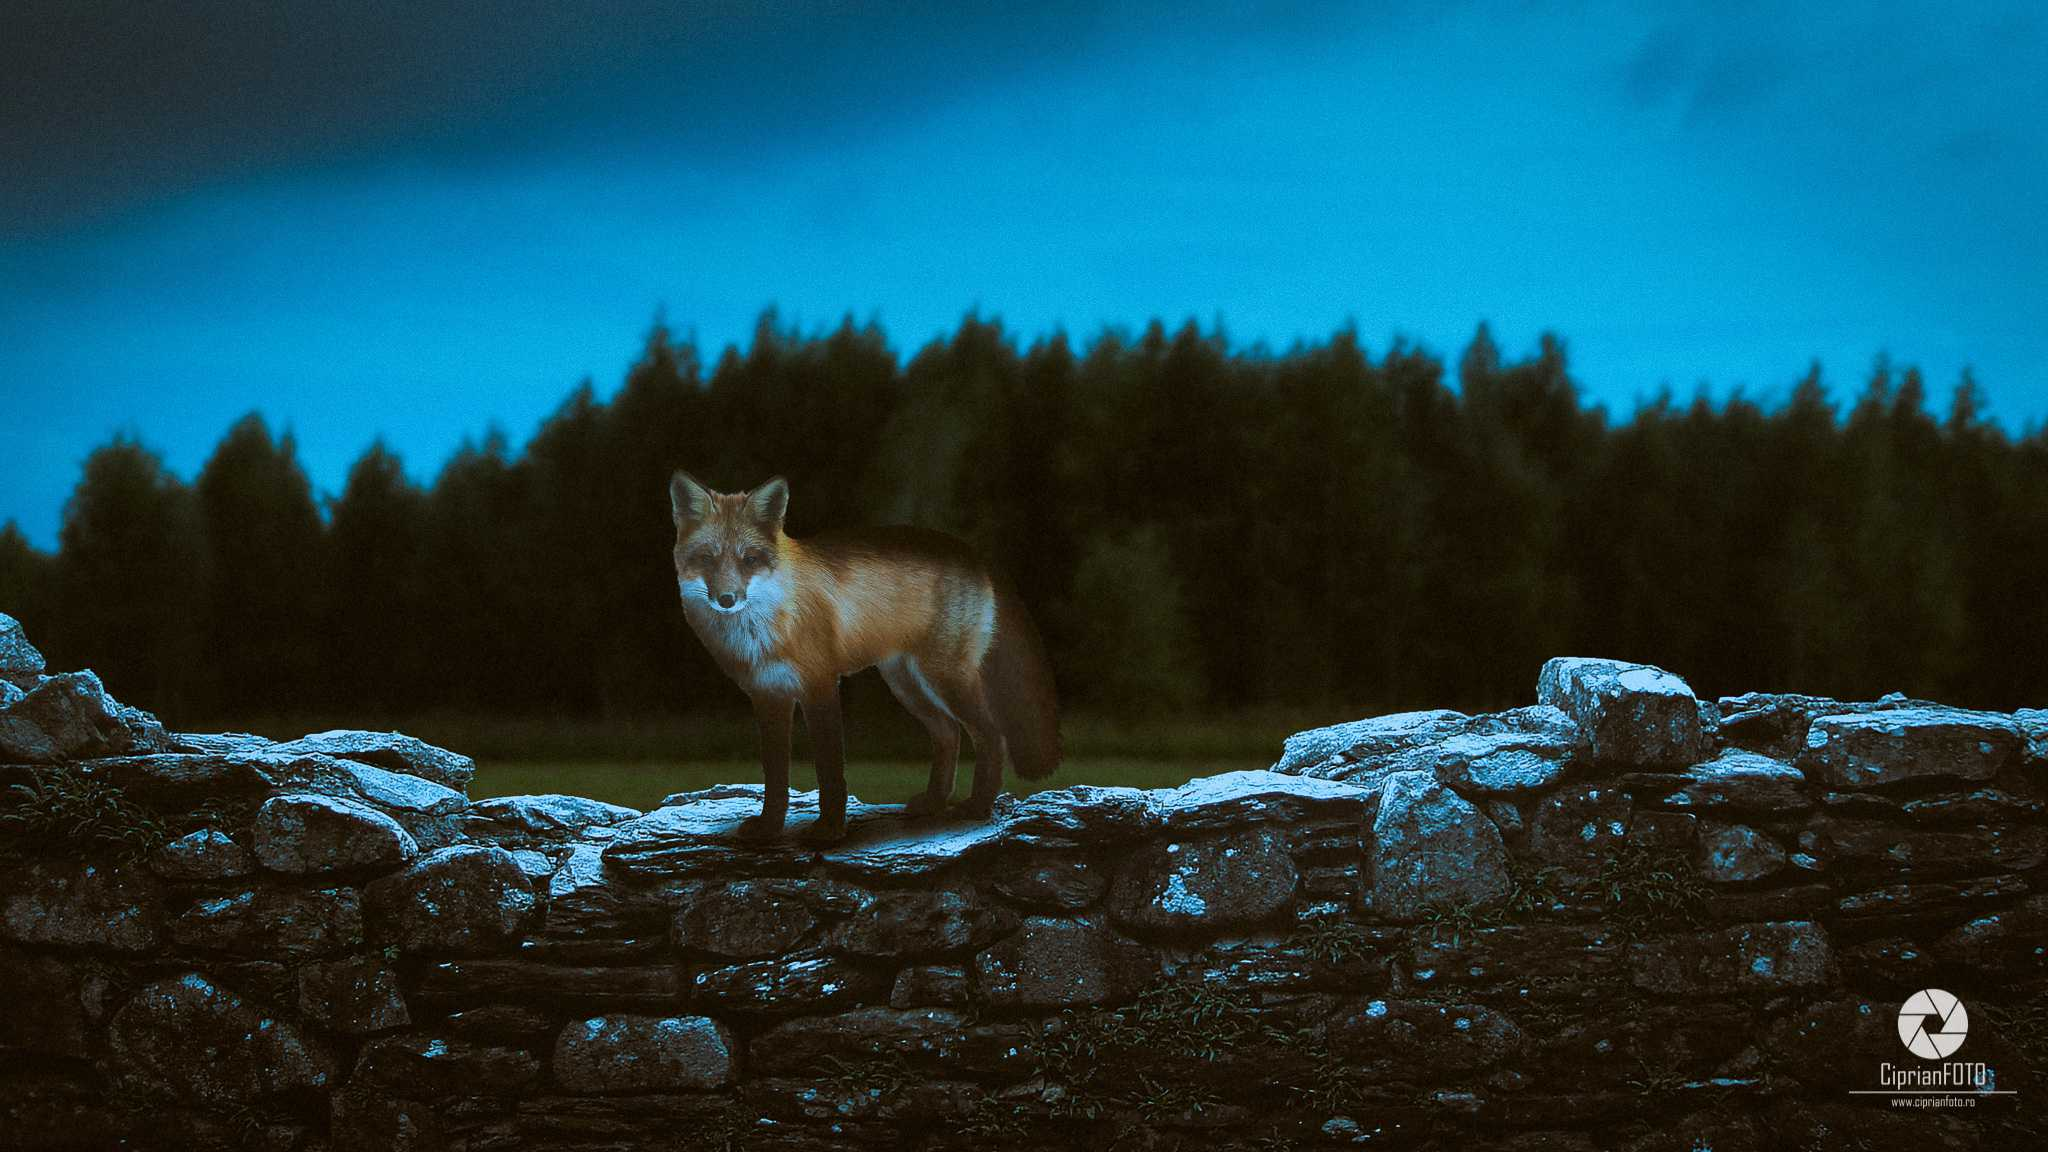 The Fox, Photoshop Manipulation Tutorial, CiprianFOTO